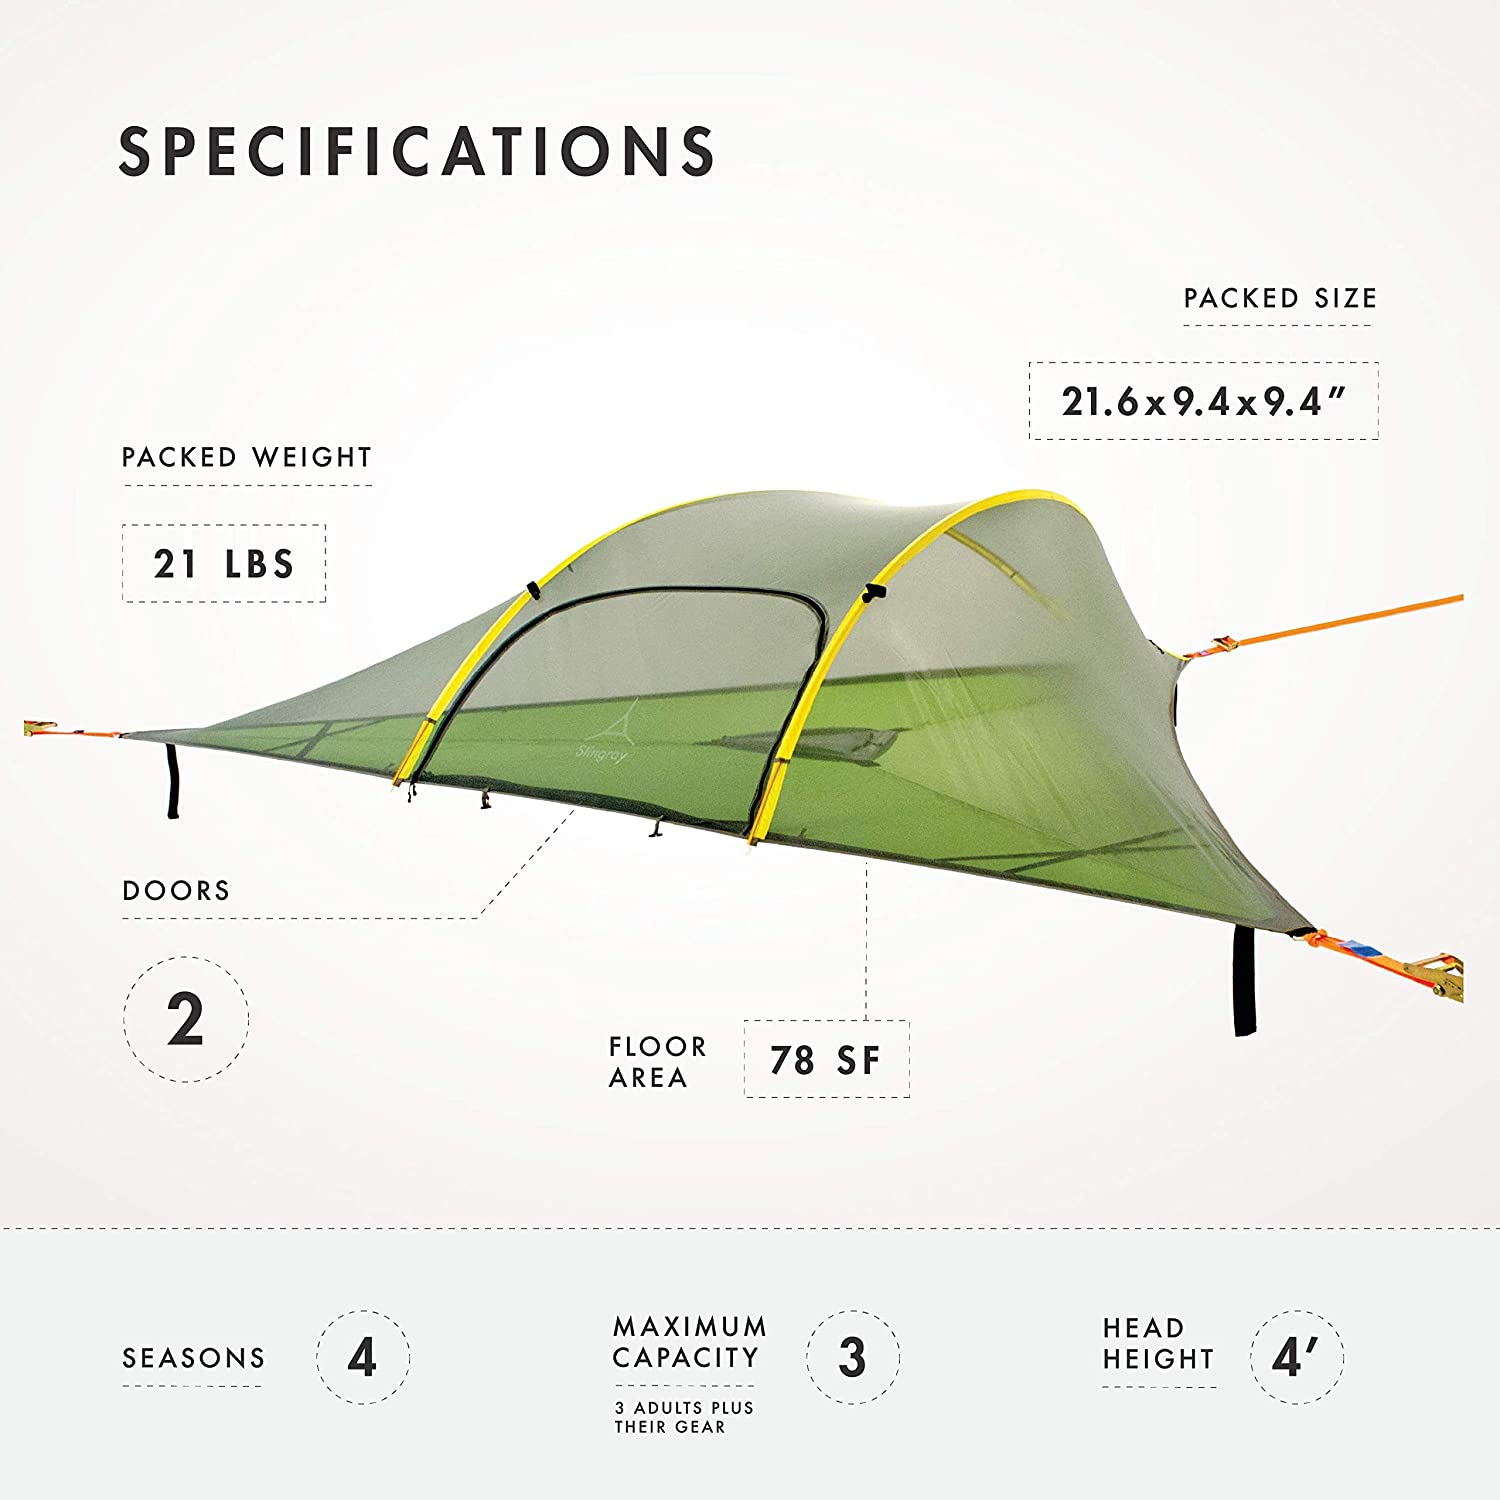 Tentsile Stingray 3 Person All Season Suspended Camping 360 Degree Feedback Report Spider Diagram Tree Tent Blue Rainfly Sports Outdoors